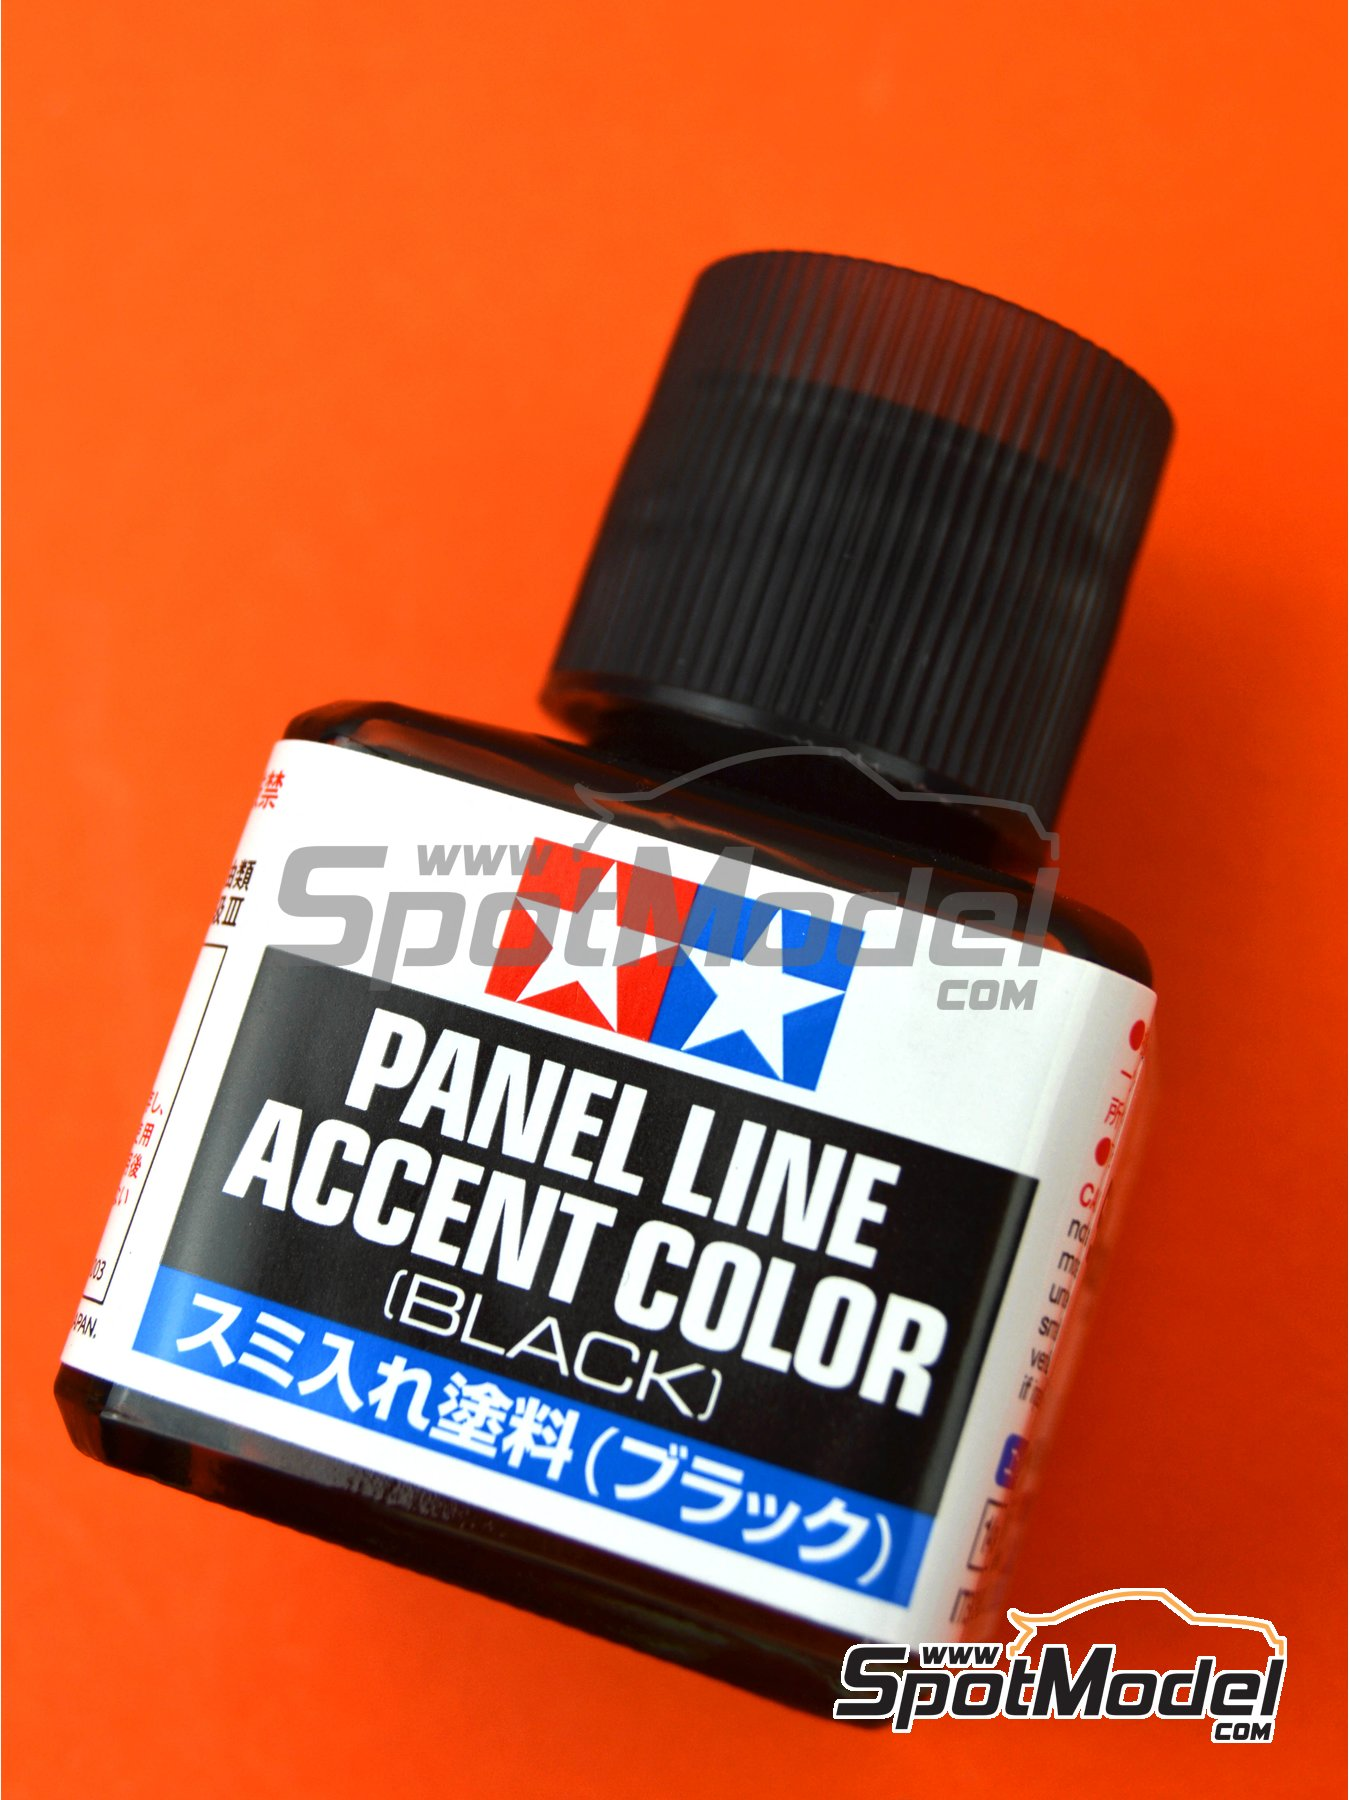 Panel line accent color black - 1 x 40ml | Paint manufactured by Tamiya (ref. TAM87131) image